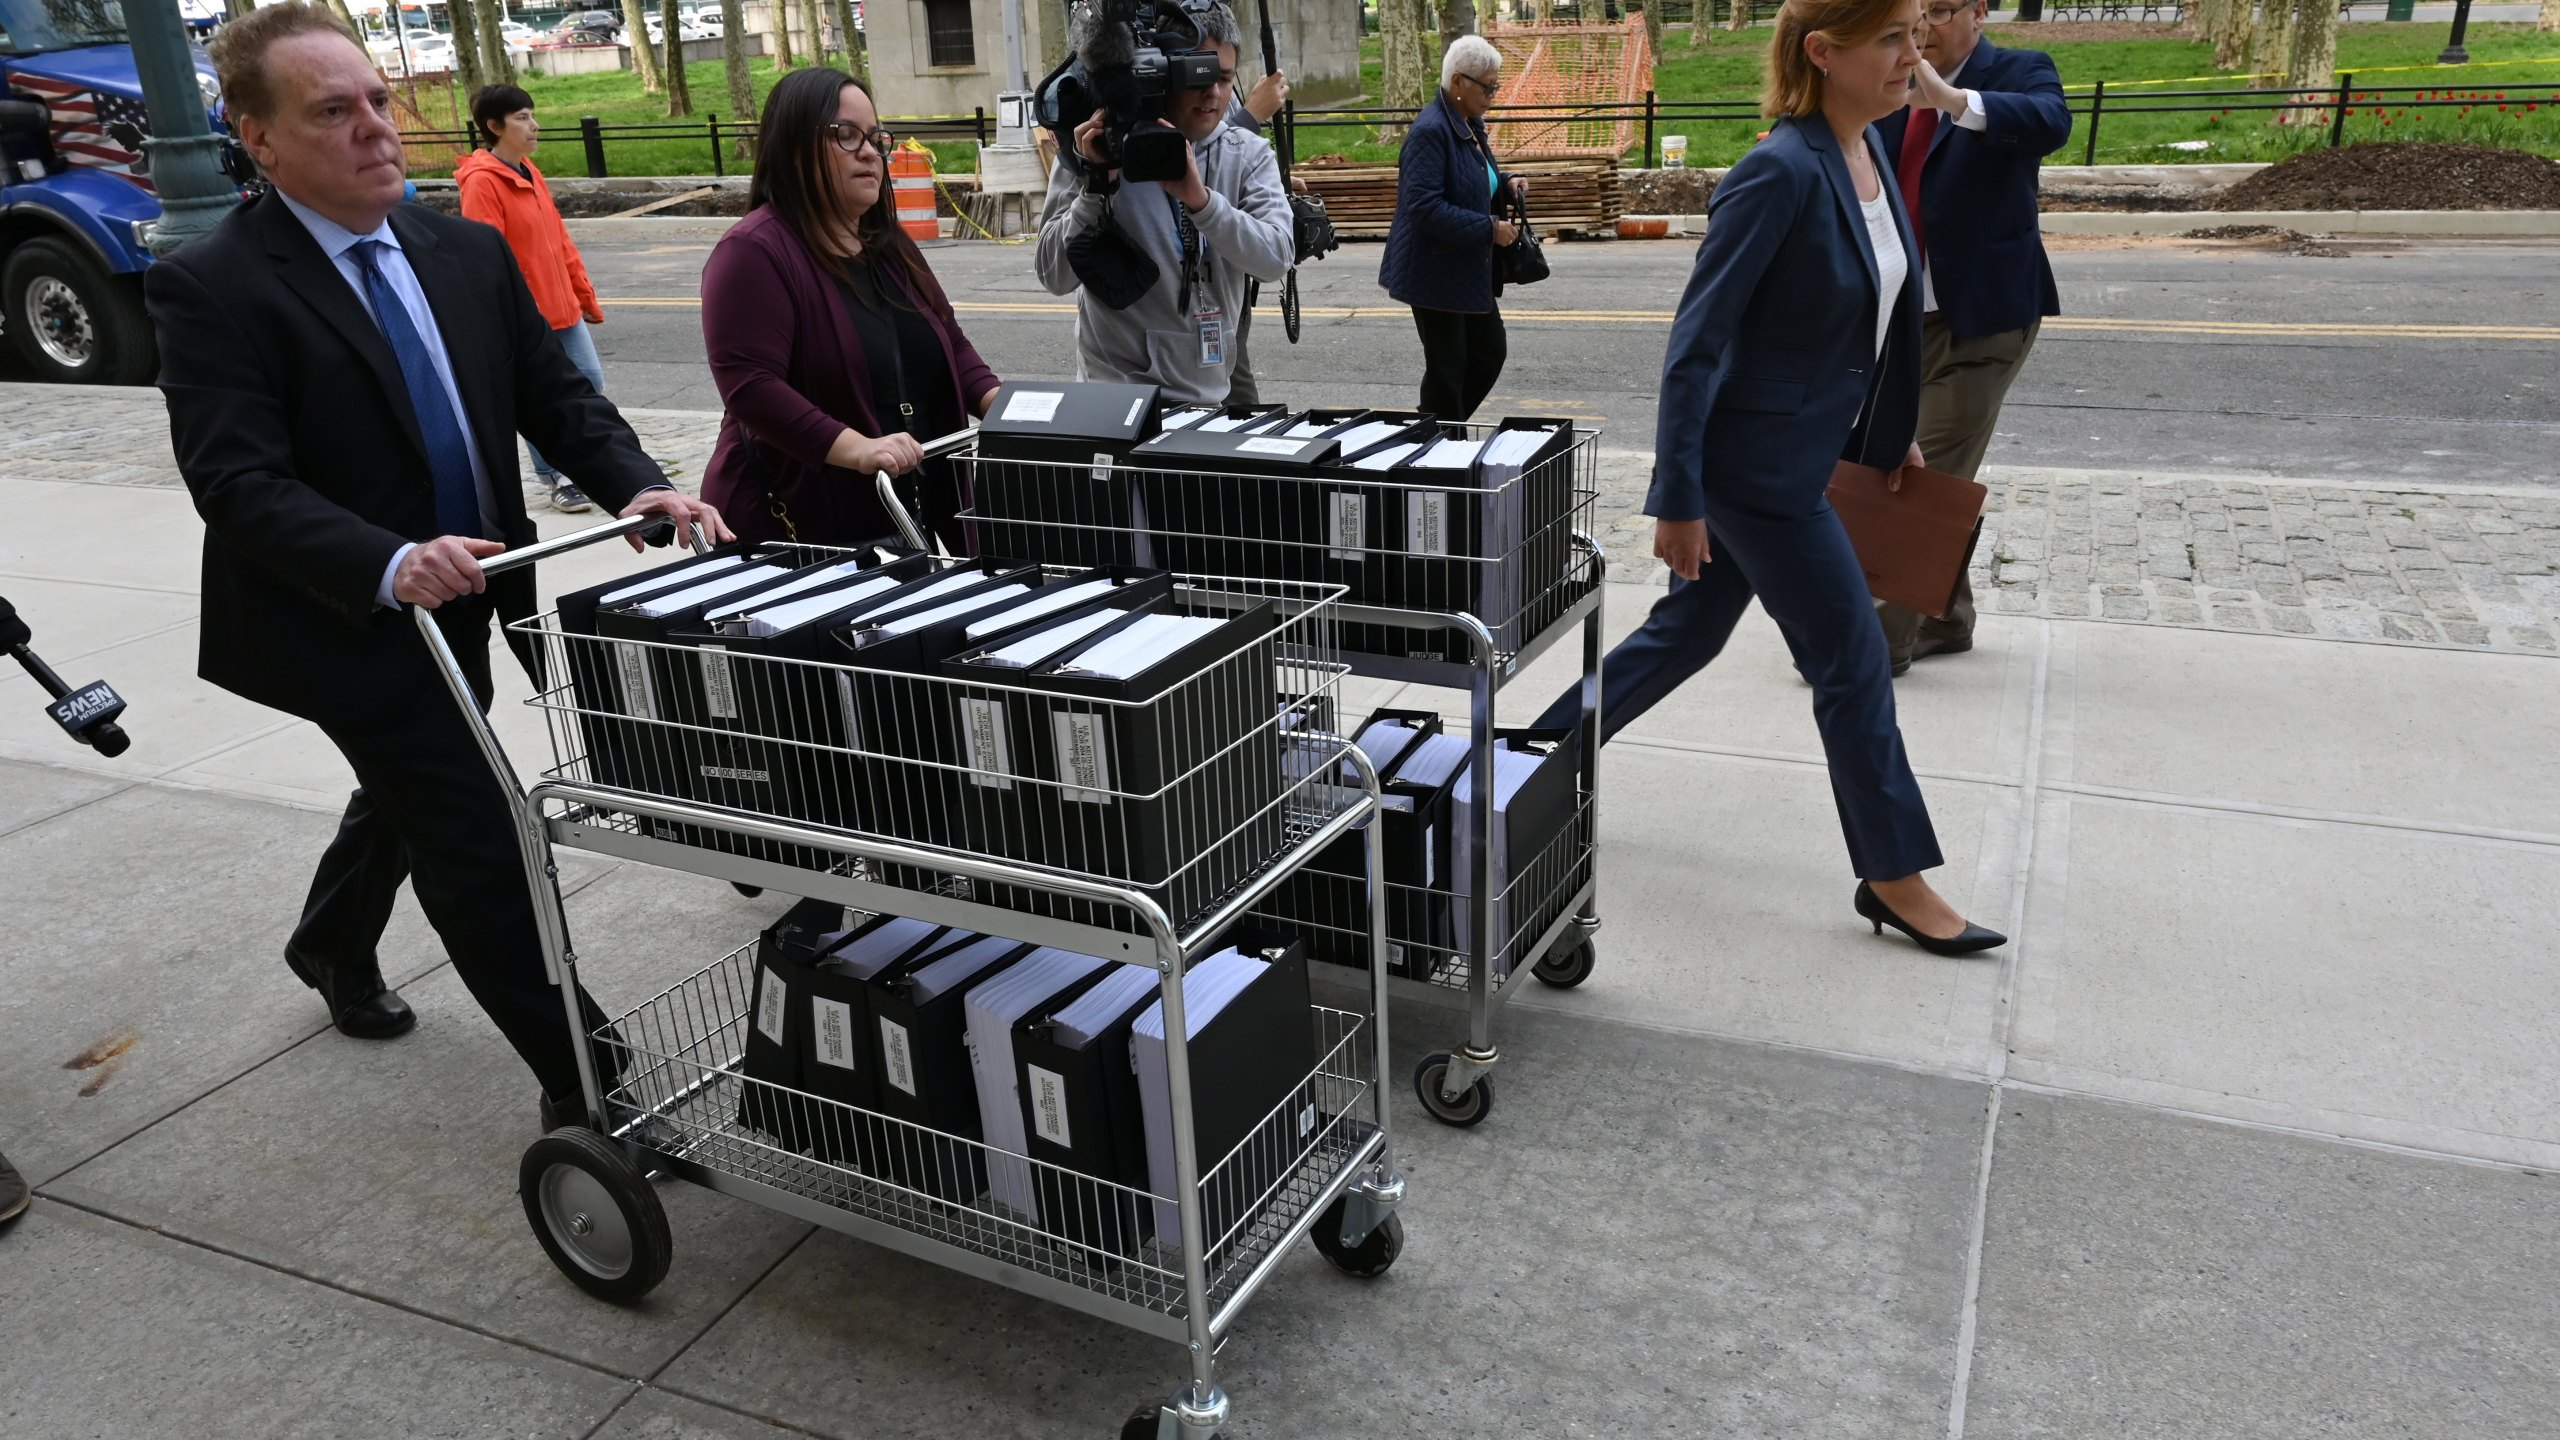 Members of the prosecution in the Nxivm case arrive with documents at Brooklyn Federal Court on May 7, 2019, for day one of the trial of Keith Raniere, founder of Nxivm. (Credit: TIMOTHY A. CLARY/AFP/Getty Images)